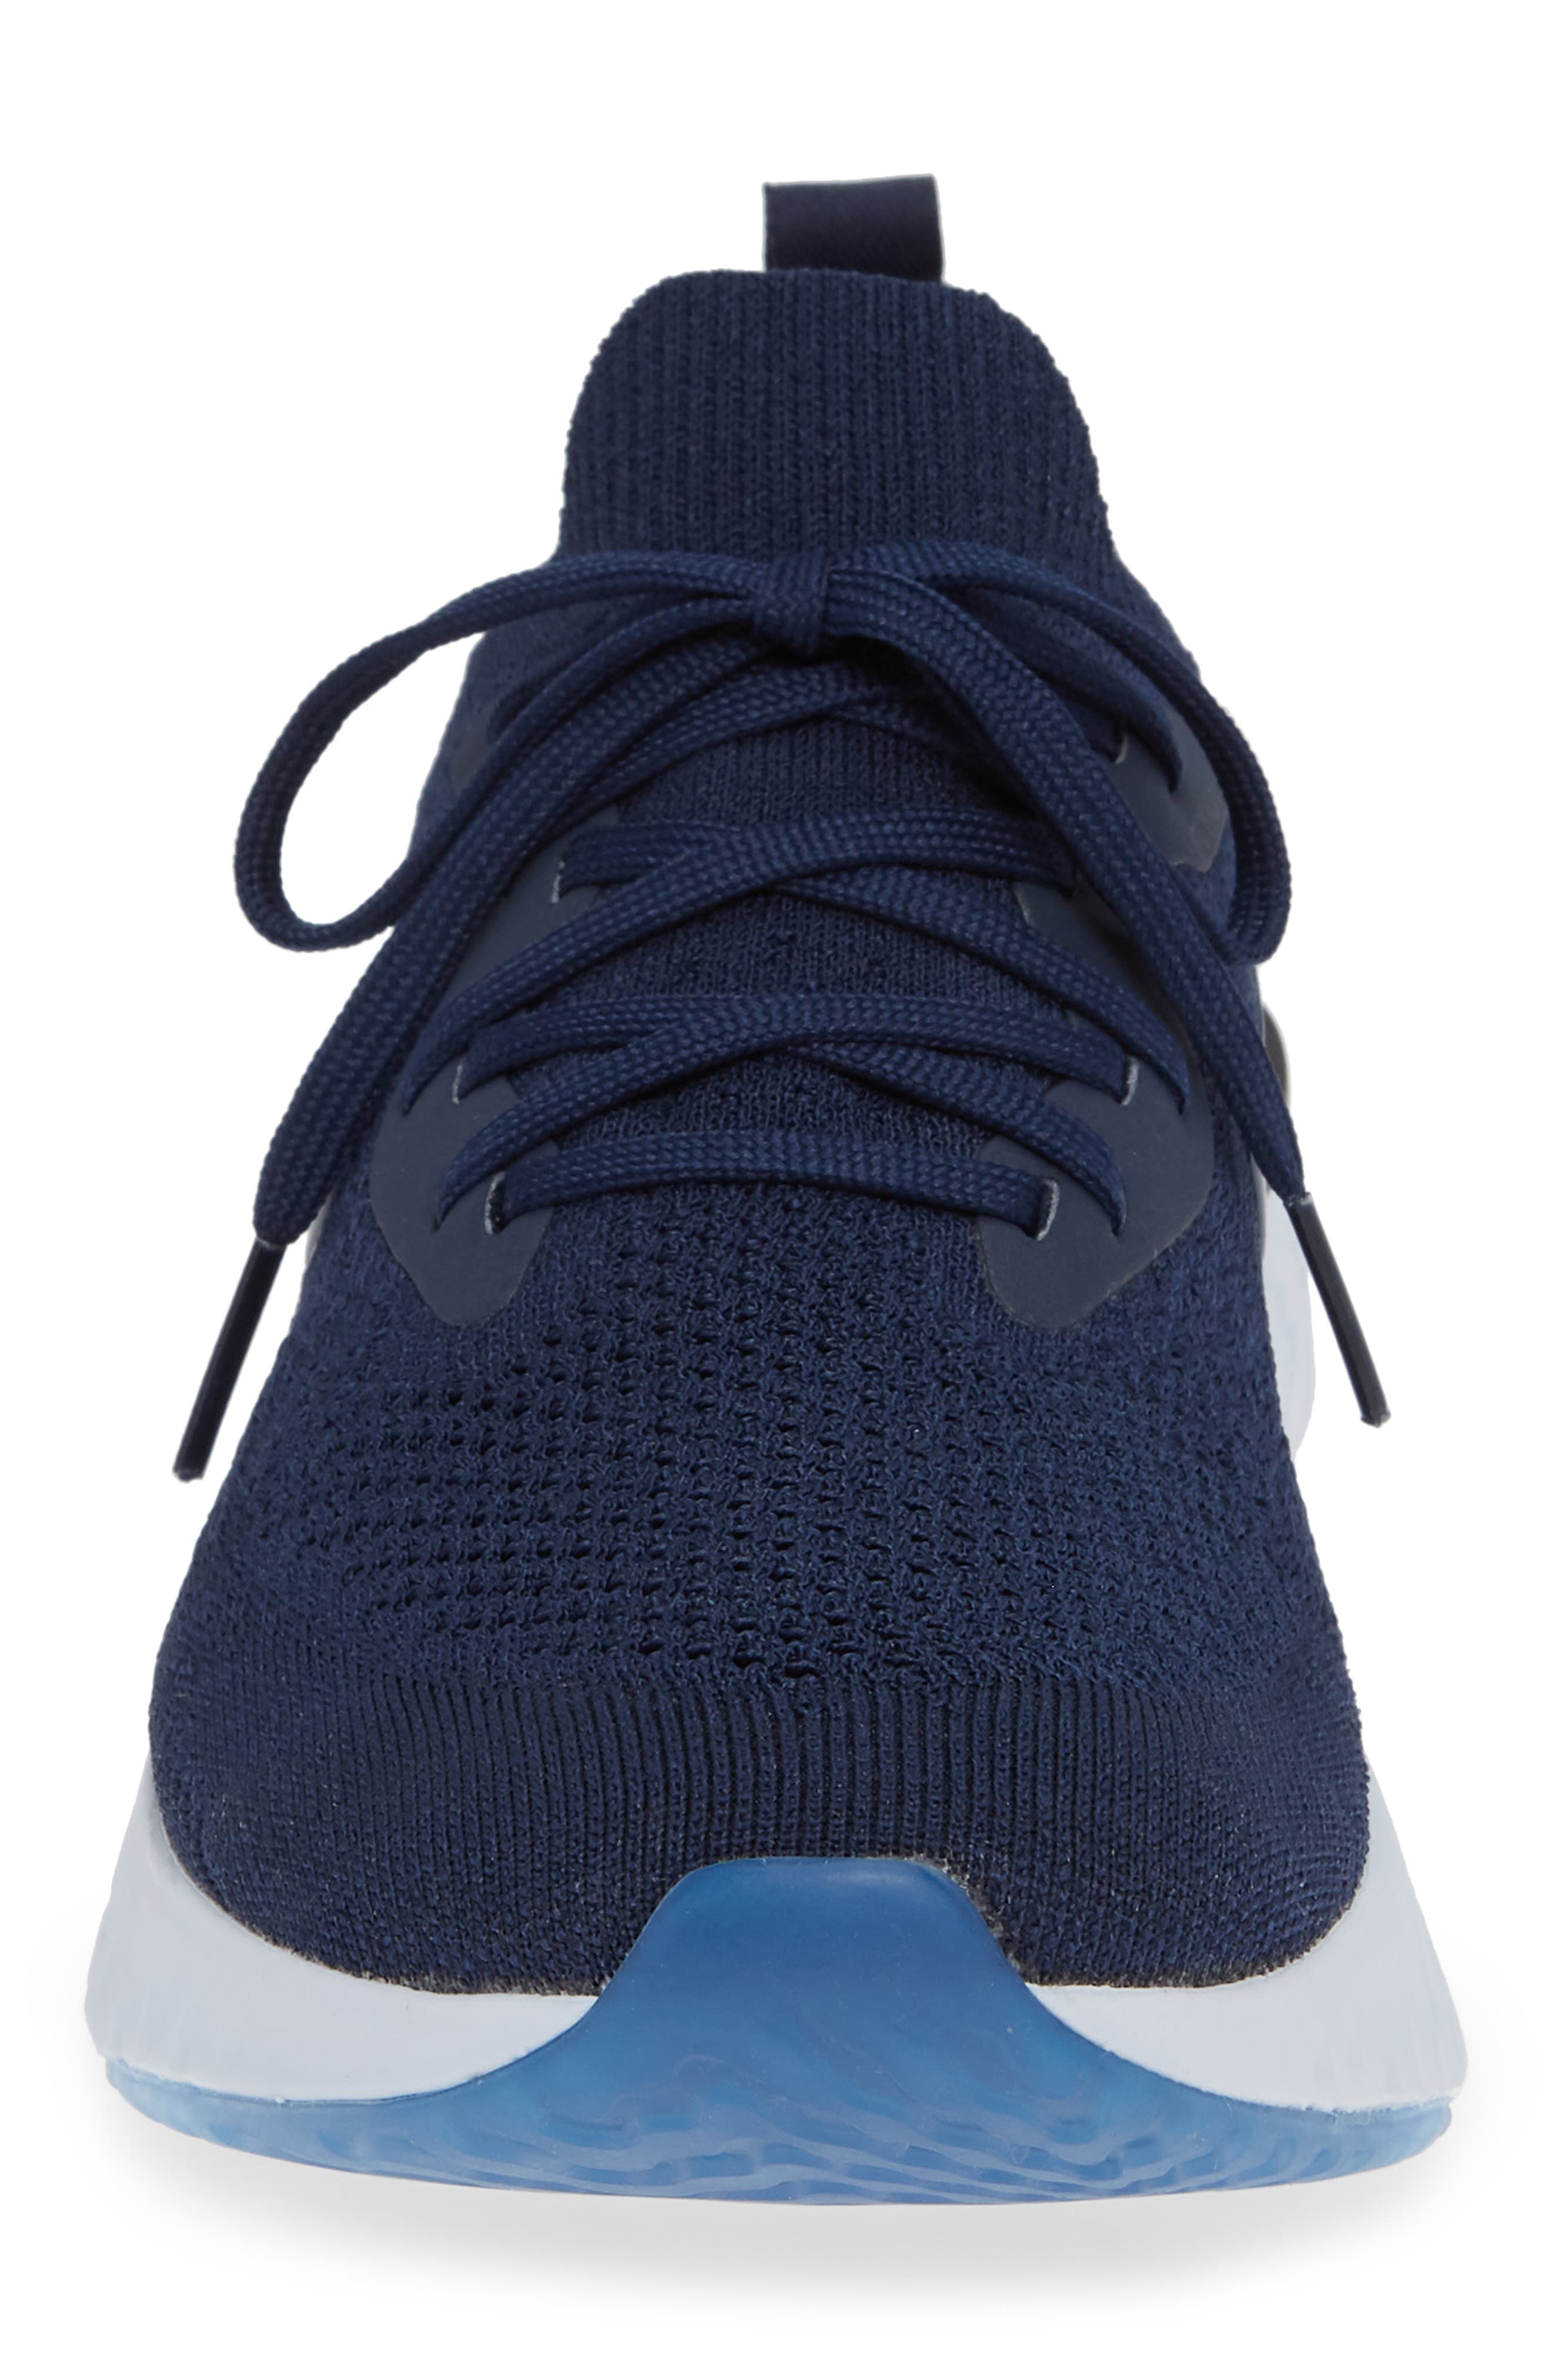 Epic React Flyknit Running Shoe,                             Alternate thumbnail 4, color,                             COLLEGE NAVY/ BLUE/ GREY